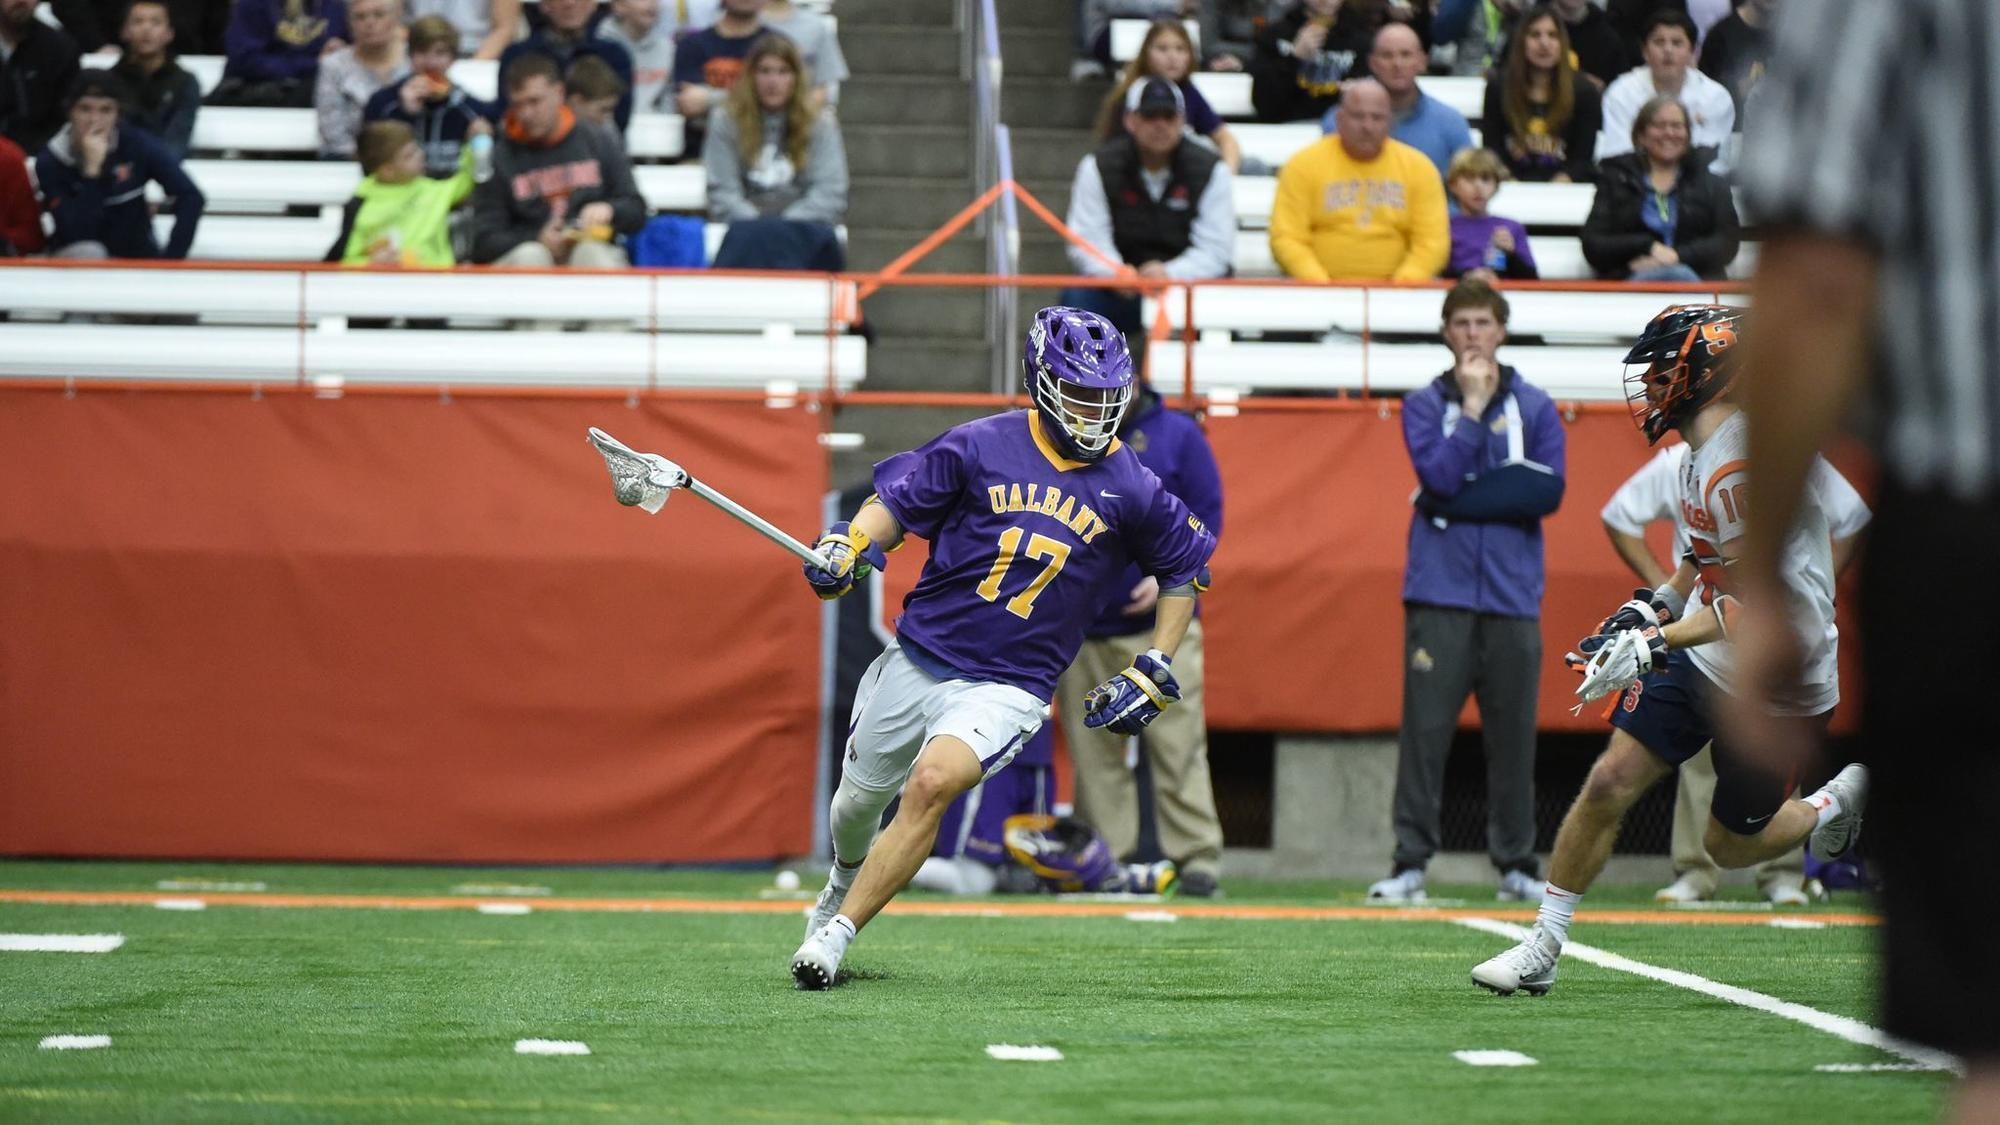 Five questions with Albany men's lacrosse player Jakob